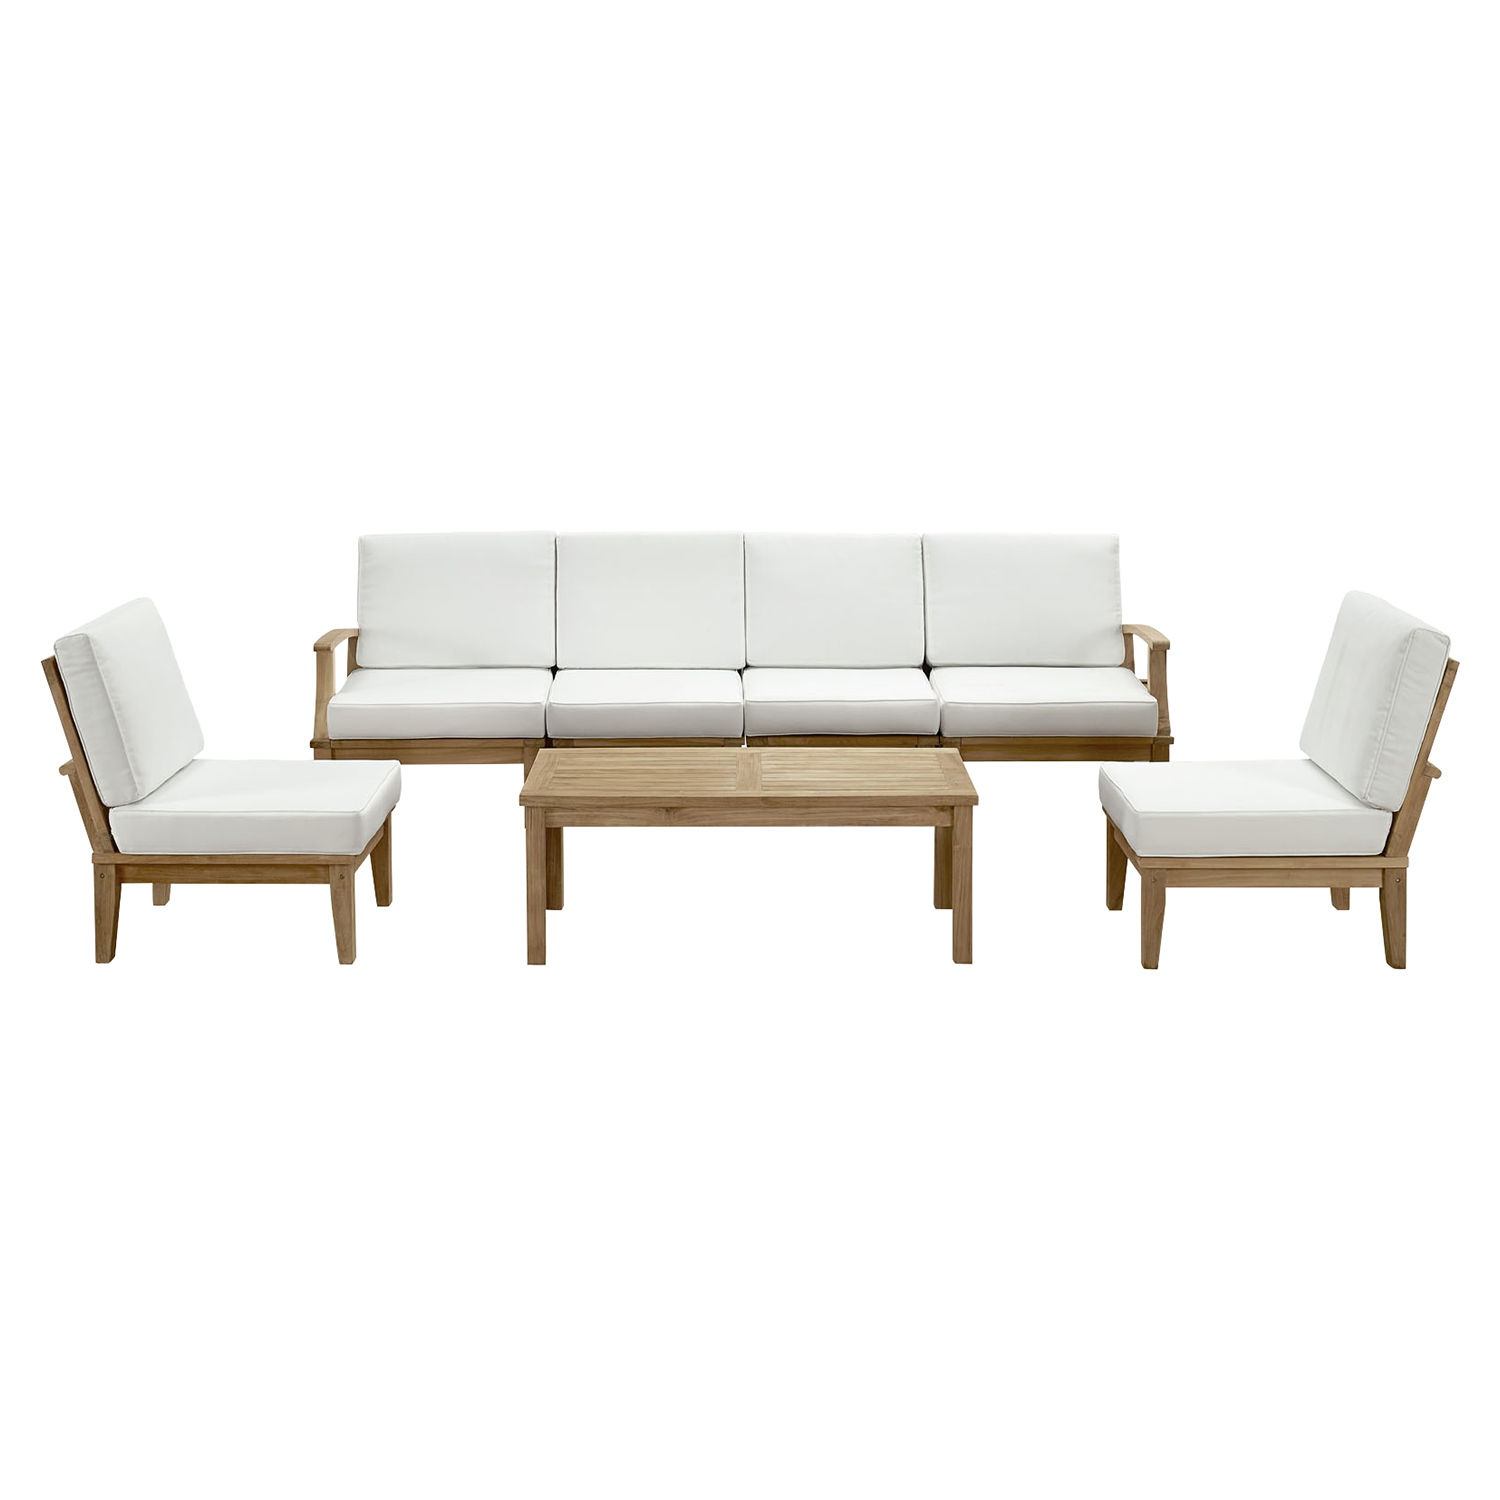 Marina 7 Pieces Patio Teak Sofa Set - Natural Frame, White - EEI-1481-NAT-WHI-SET